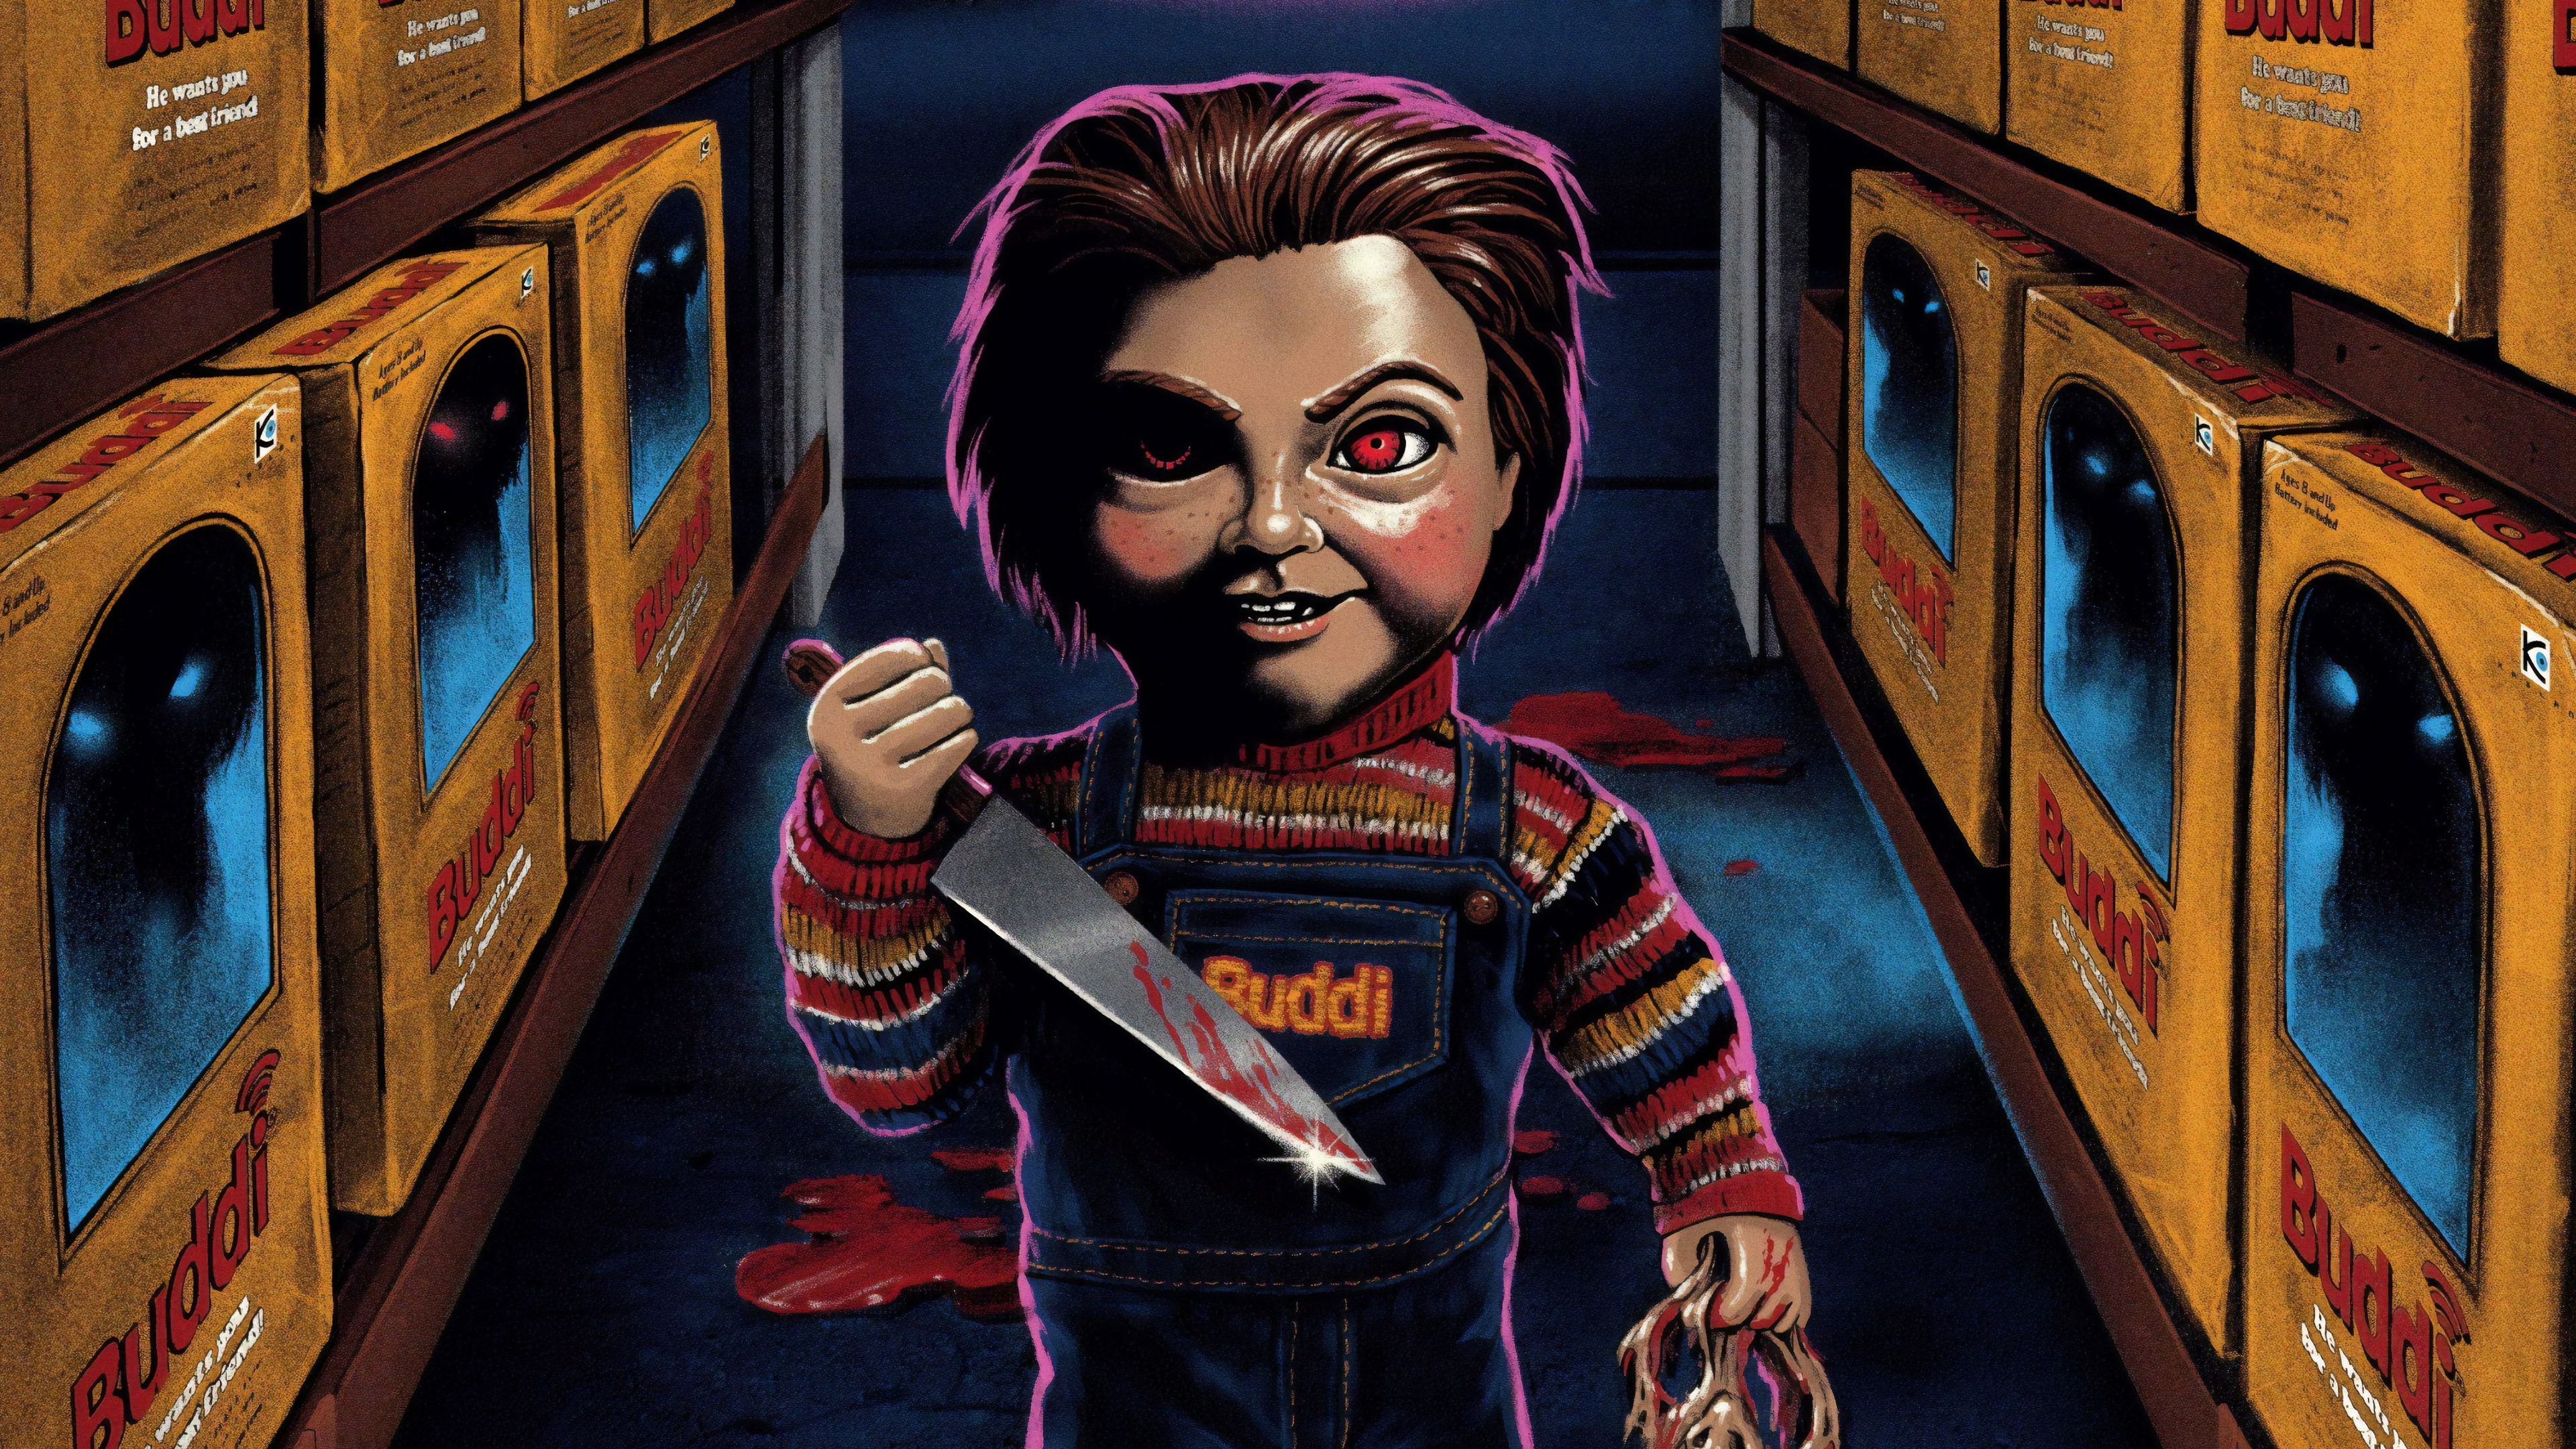 childs play 2019 new 1562107021 - Childs Play 2019 New - movies wallpapers, hd-wallpapers, childs play wallpapers, 5k wallpapers, 4k-wallpapers, 2019 movies wallpapers